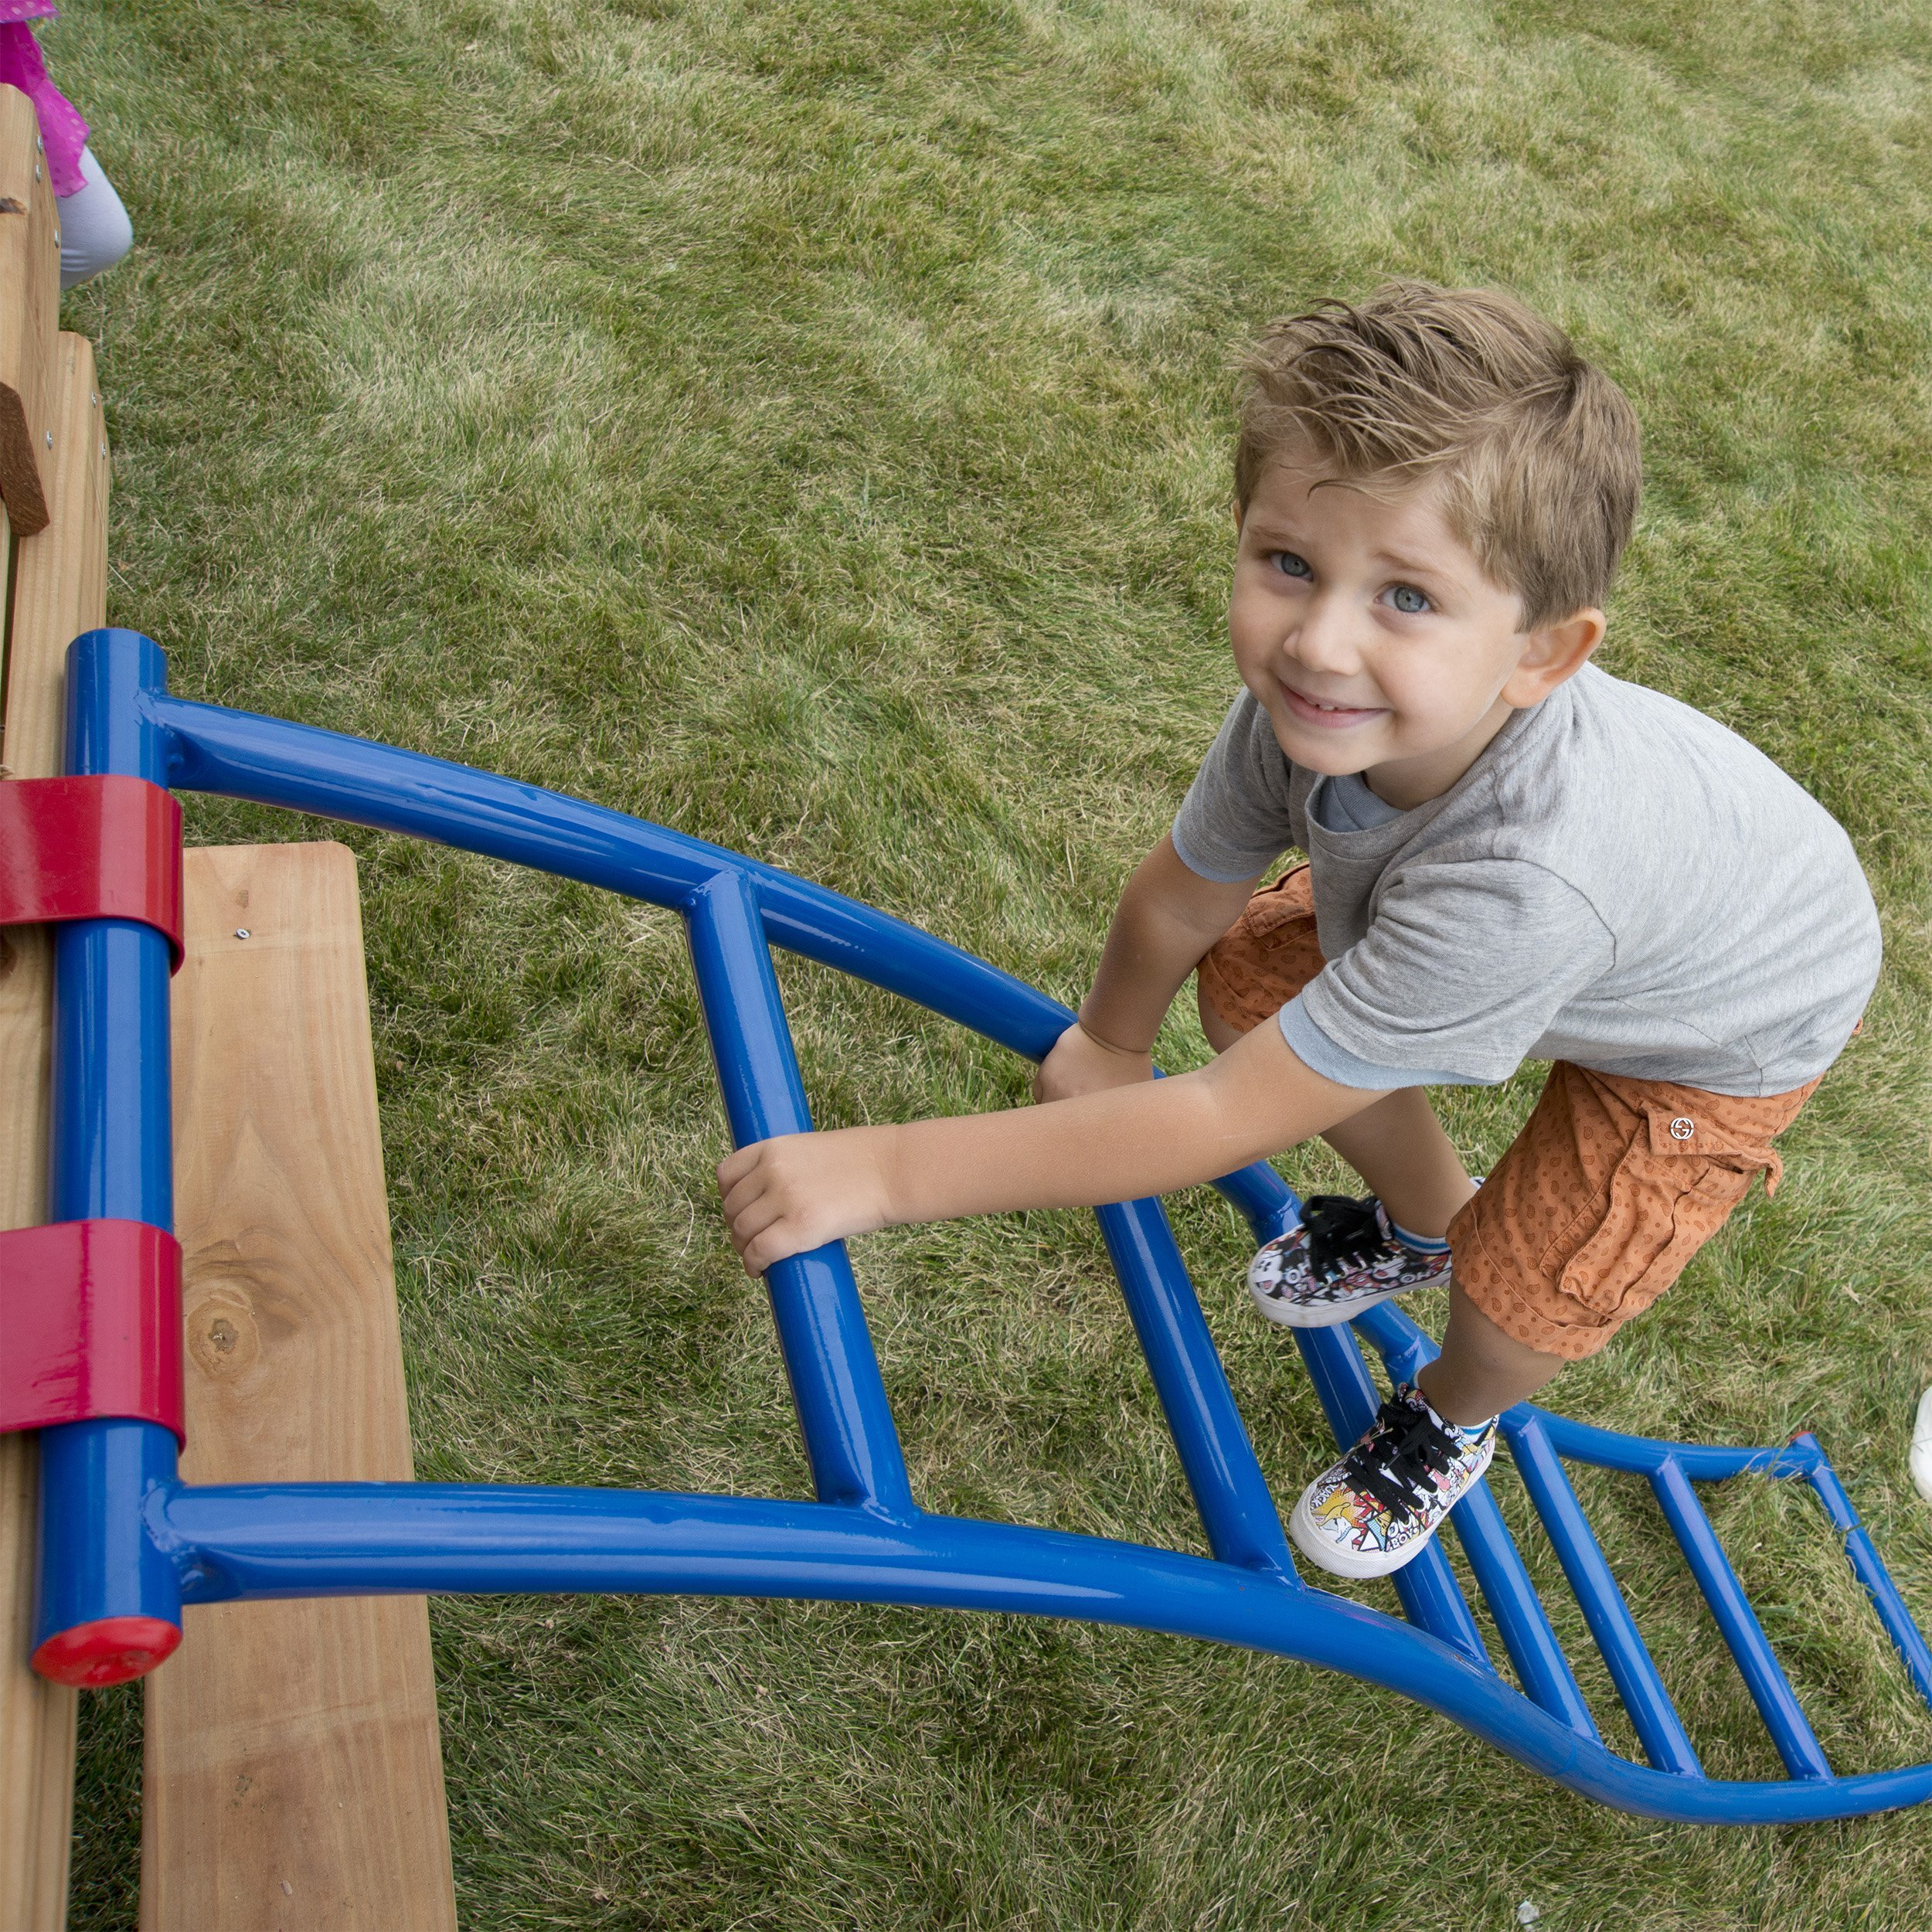 Swing-N-Slide NE 5040 Metal Arch Ladder with Multiple Configurations for Swing Sets, Play Sets & Playhouses, Blue & Red by Swing-N-Slide (Image #3)